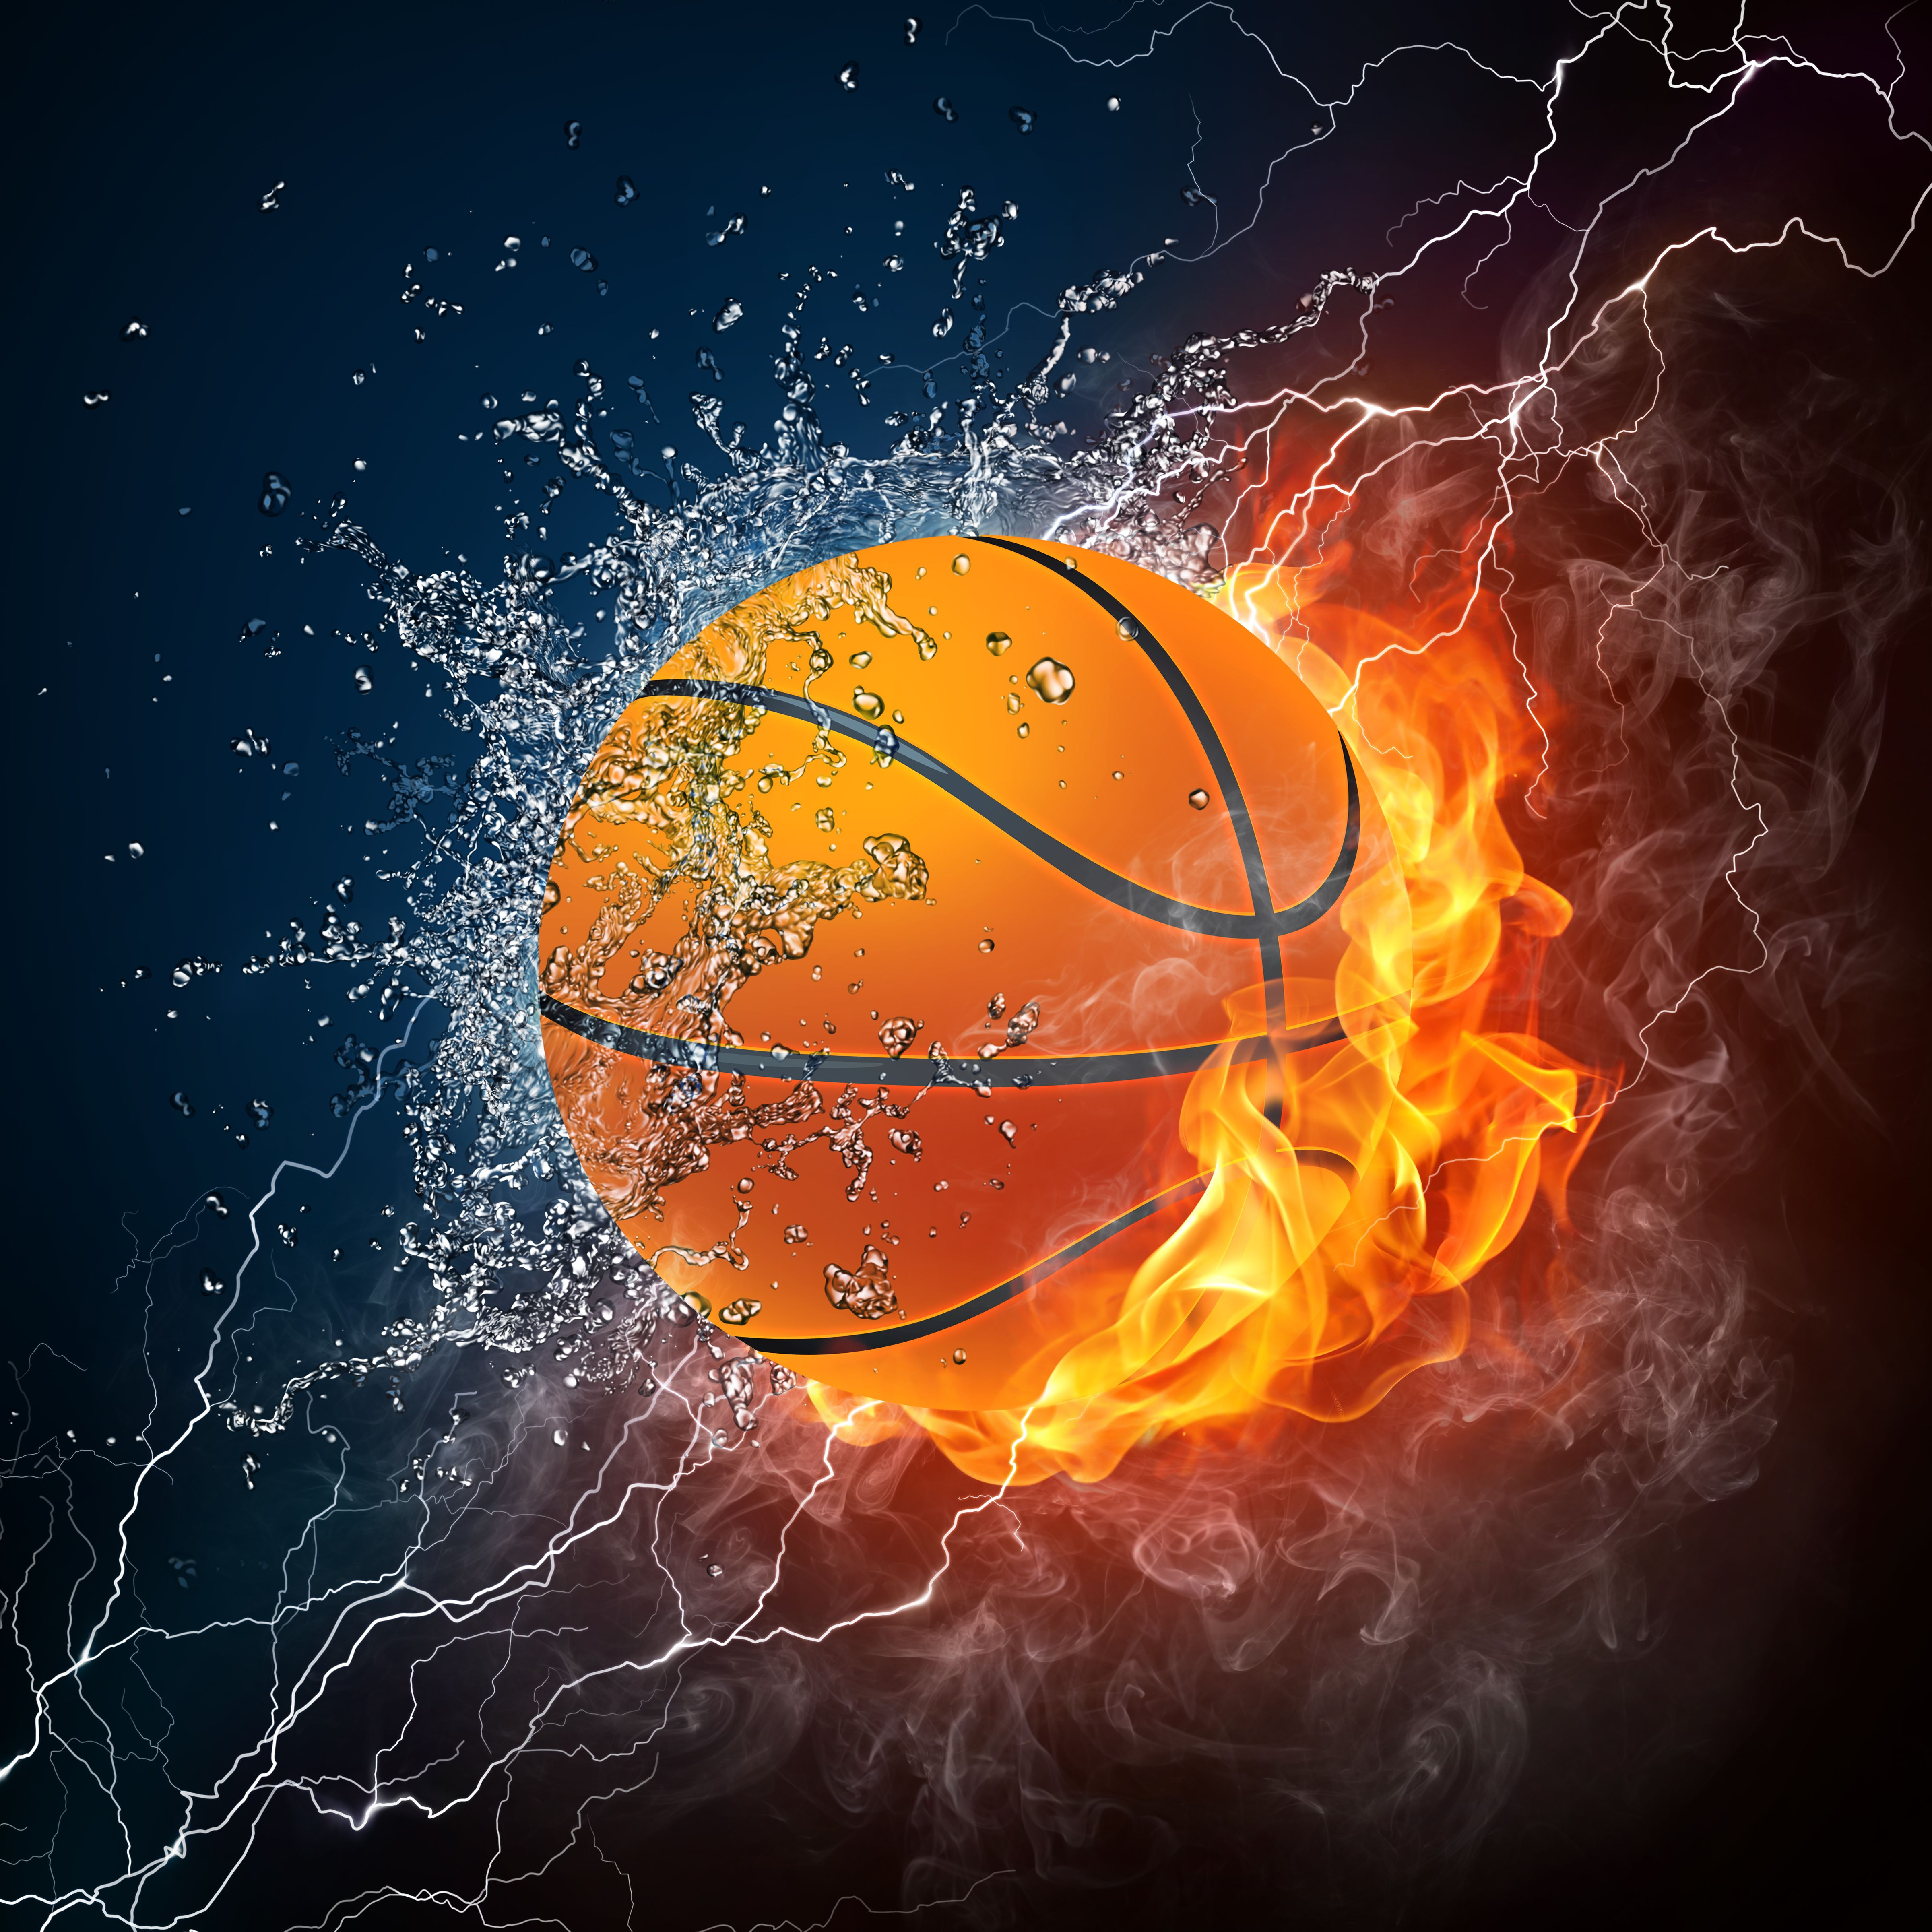 Basketball ball in a fire HD Wallpaper in high defination ...